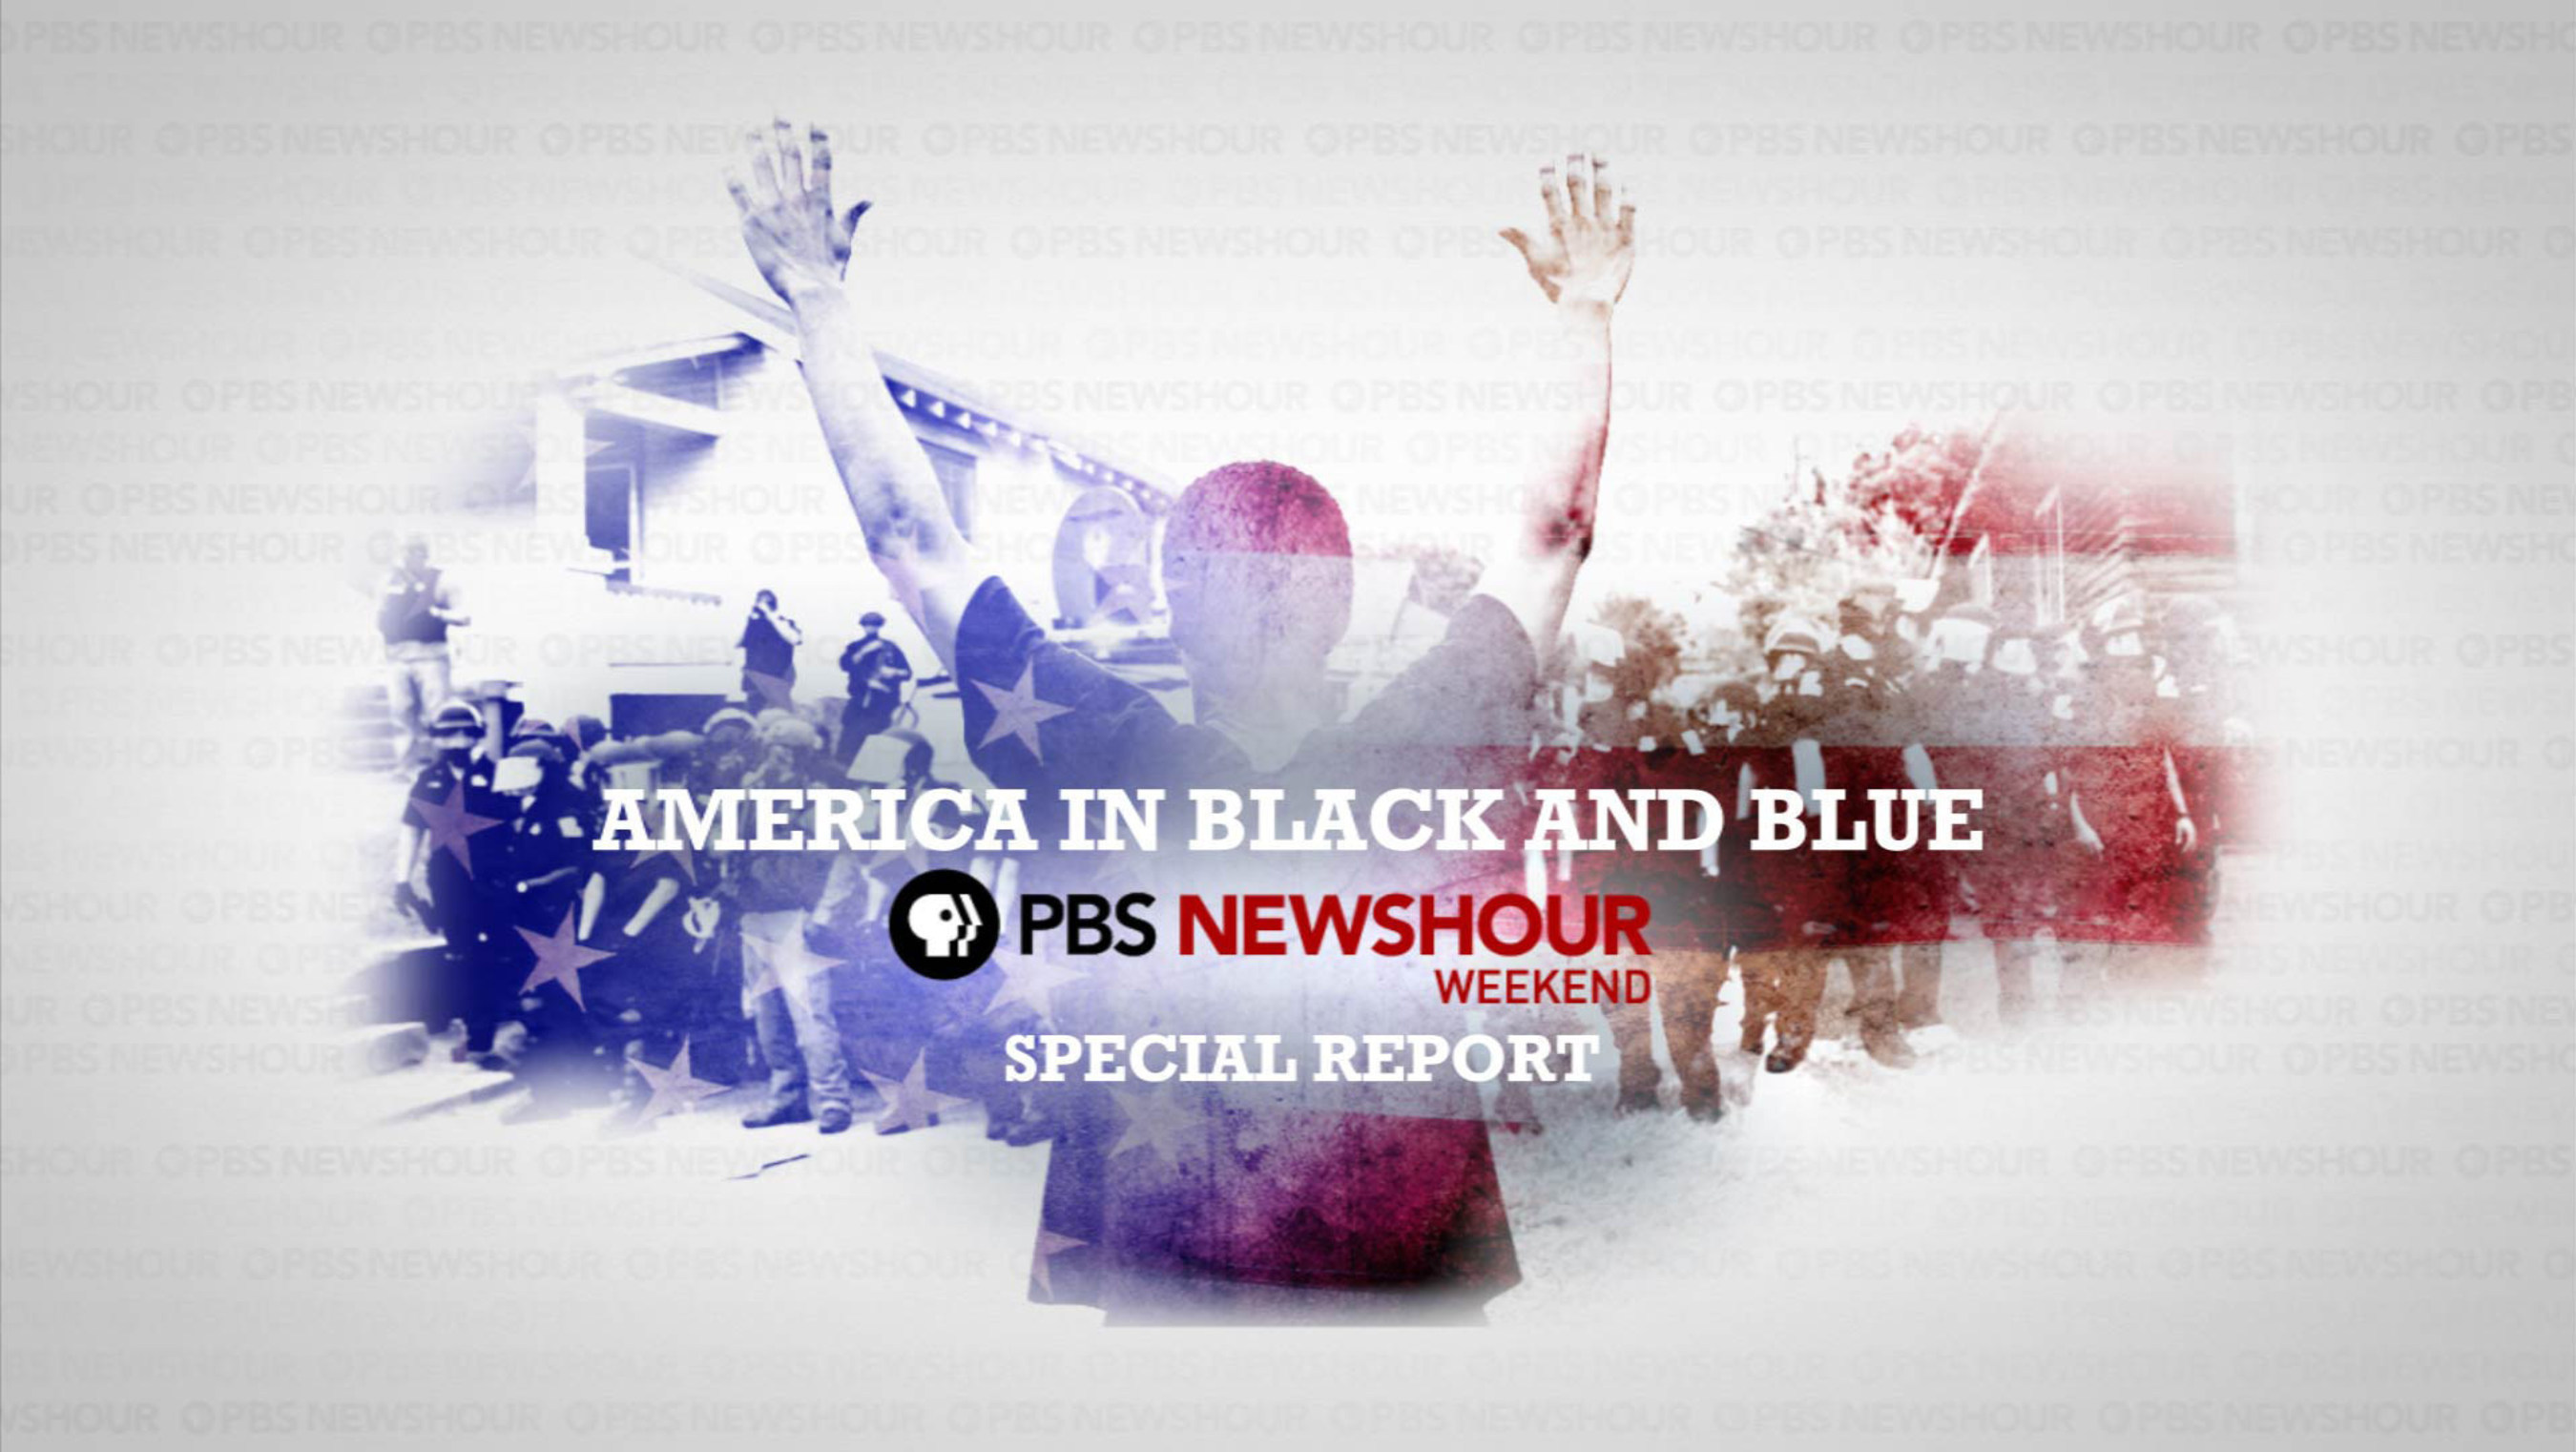 PBS Presents 'America In Black & Blue: A PBS Newshour Weekend Special,' A Timely Report On Race, Policing And Violence